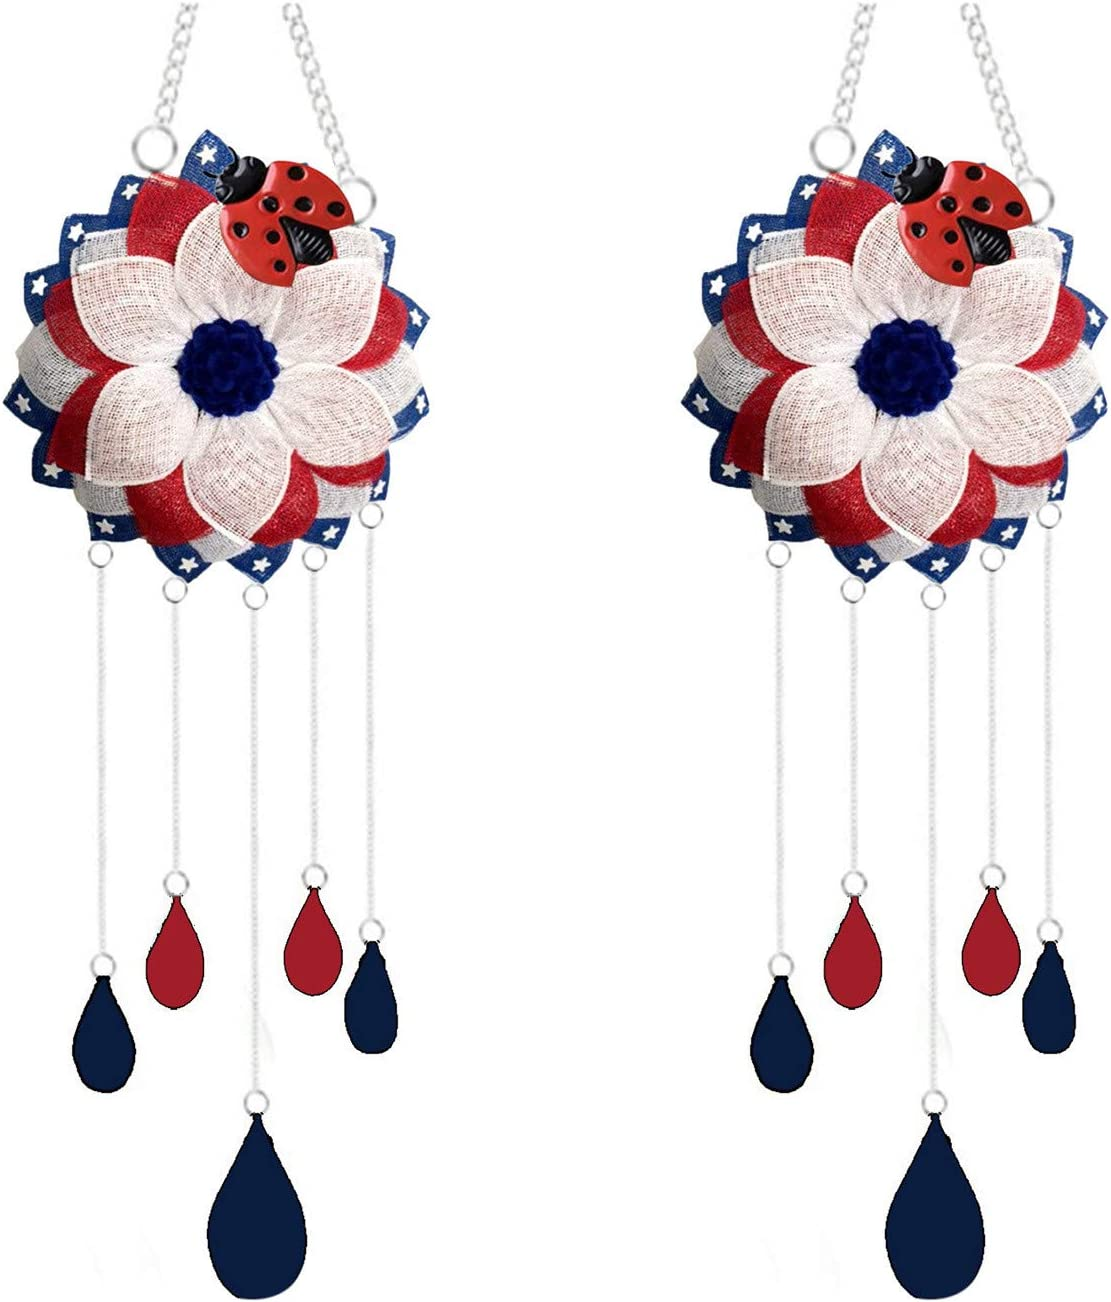 2PC Independence Day Wind Chime Pendant Crafts Living Room Bedroom Decorations, Outdoor Indoor Hanging Mobile Bell Windchime for Garden Lawn Yard Patio Waterproof Patriotic American Flag Home Decor